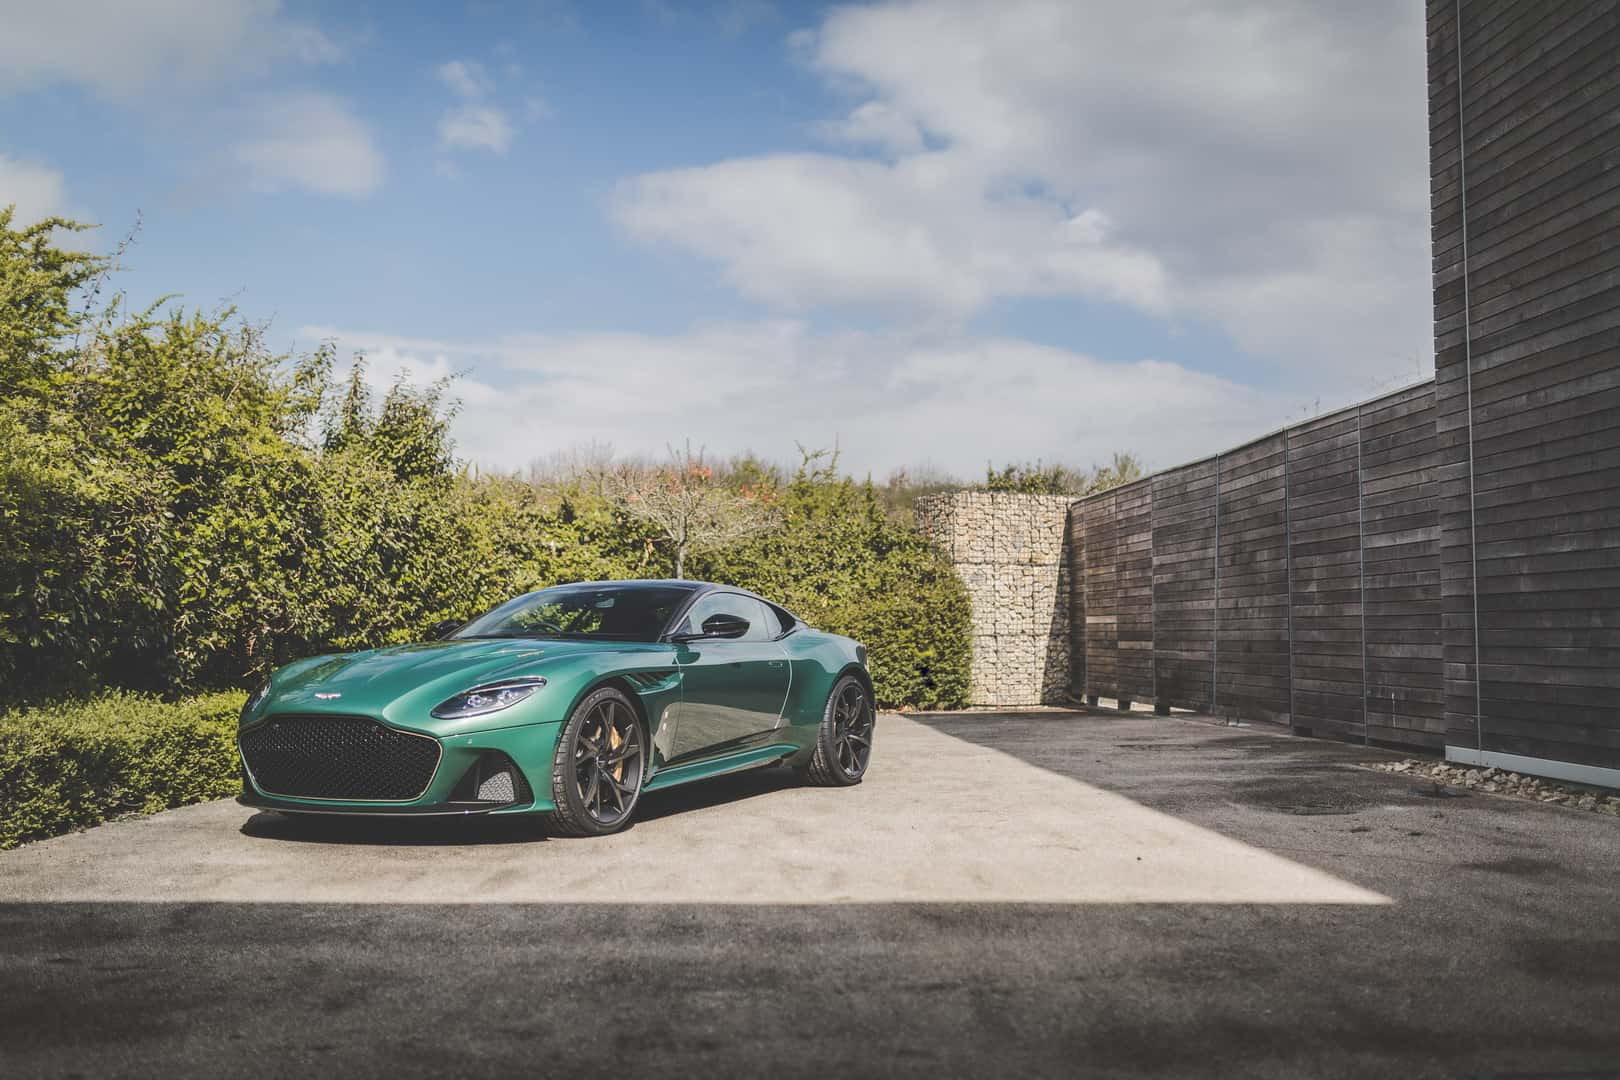 Aston Martin DBS 59 Celebrates 24 Hours Of Le Mans 1-2 From 1959